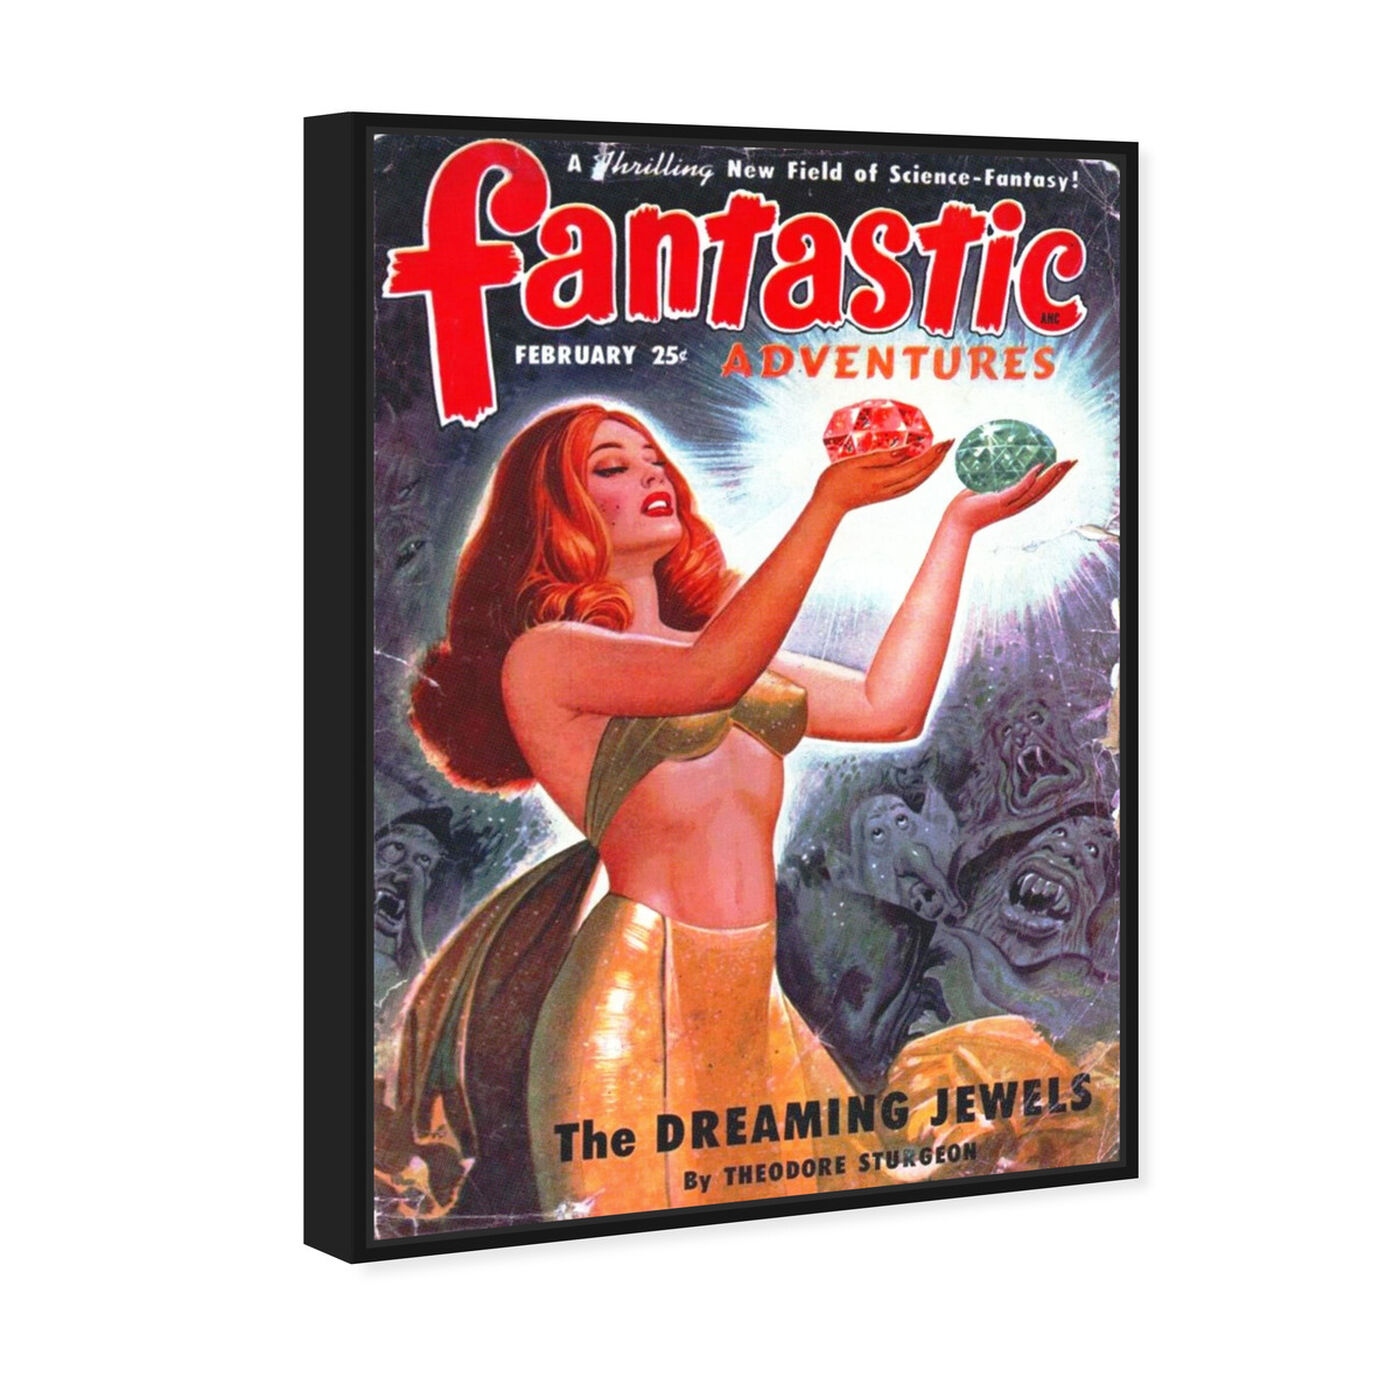 Angled view of Fantastic Adventures featuring advertising and posters art.